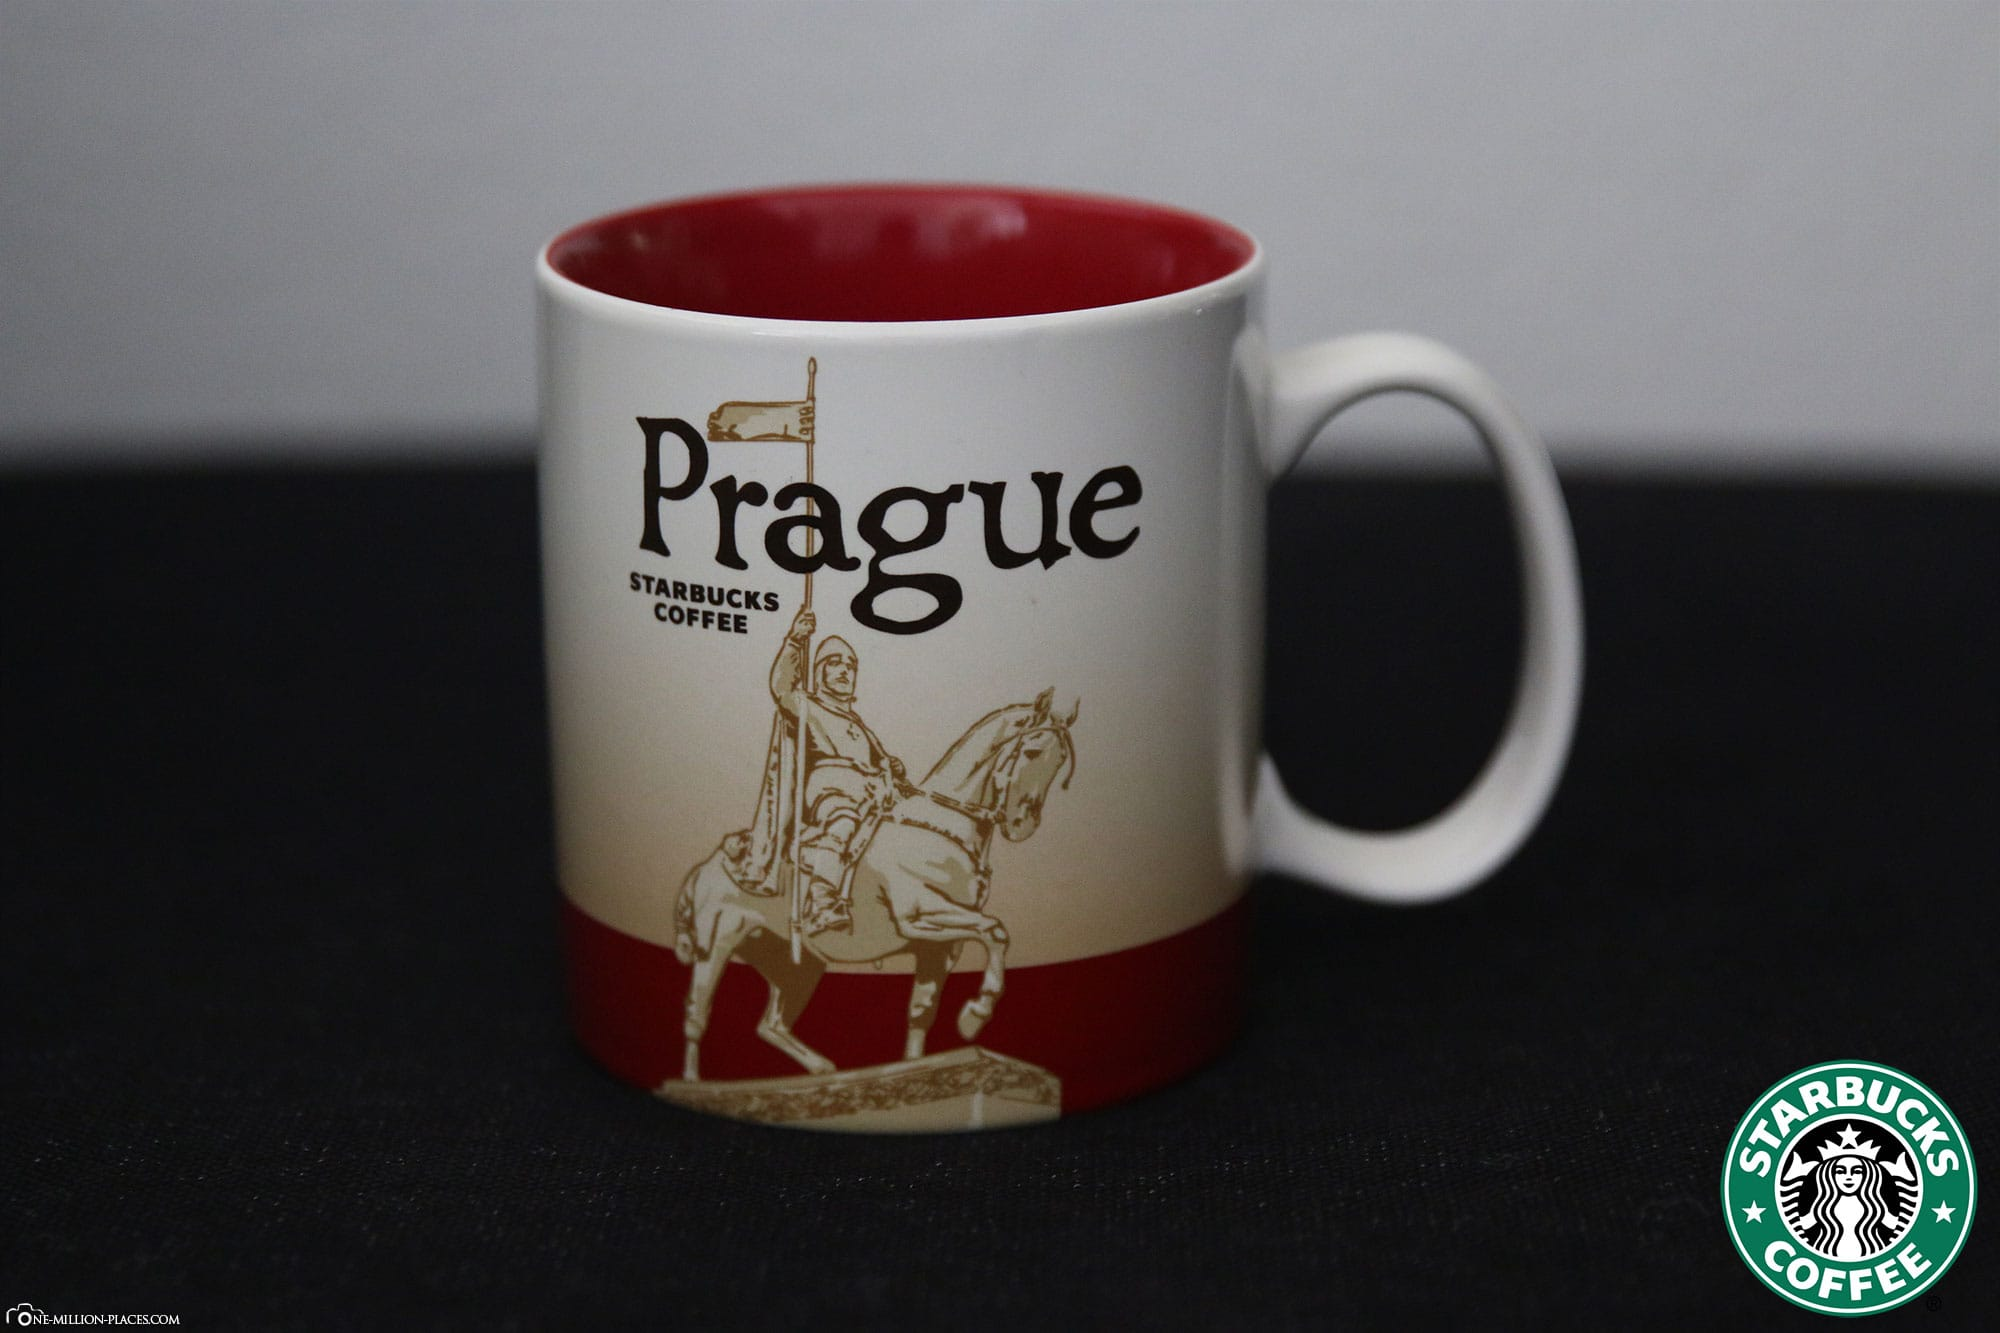 Prag, Starbucks Tasse, Global Icon Serie, City Mugs, Sammlung, Tschechien, Reisebericht